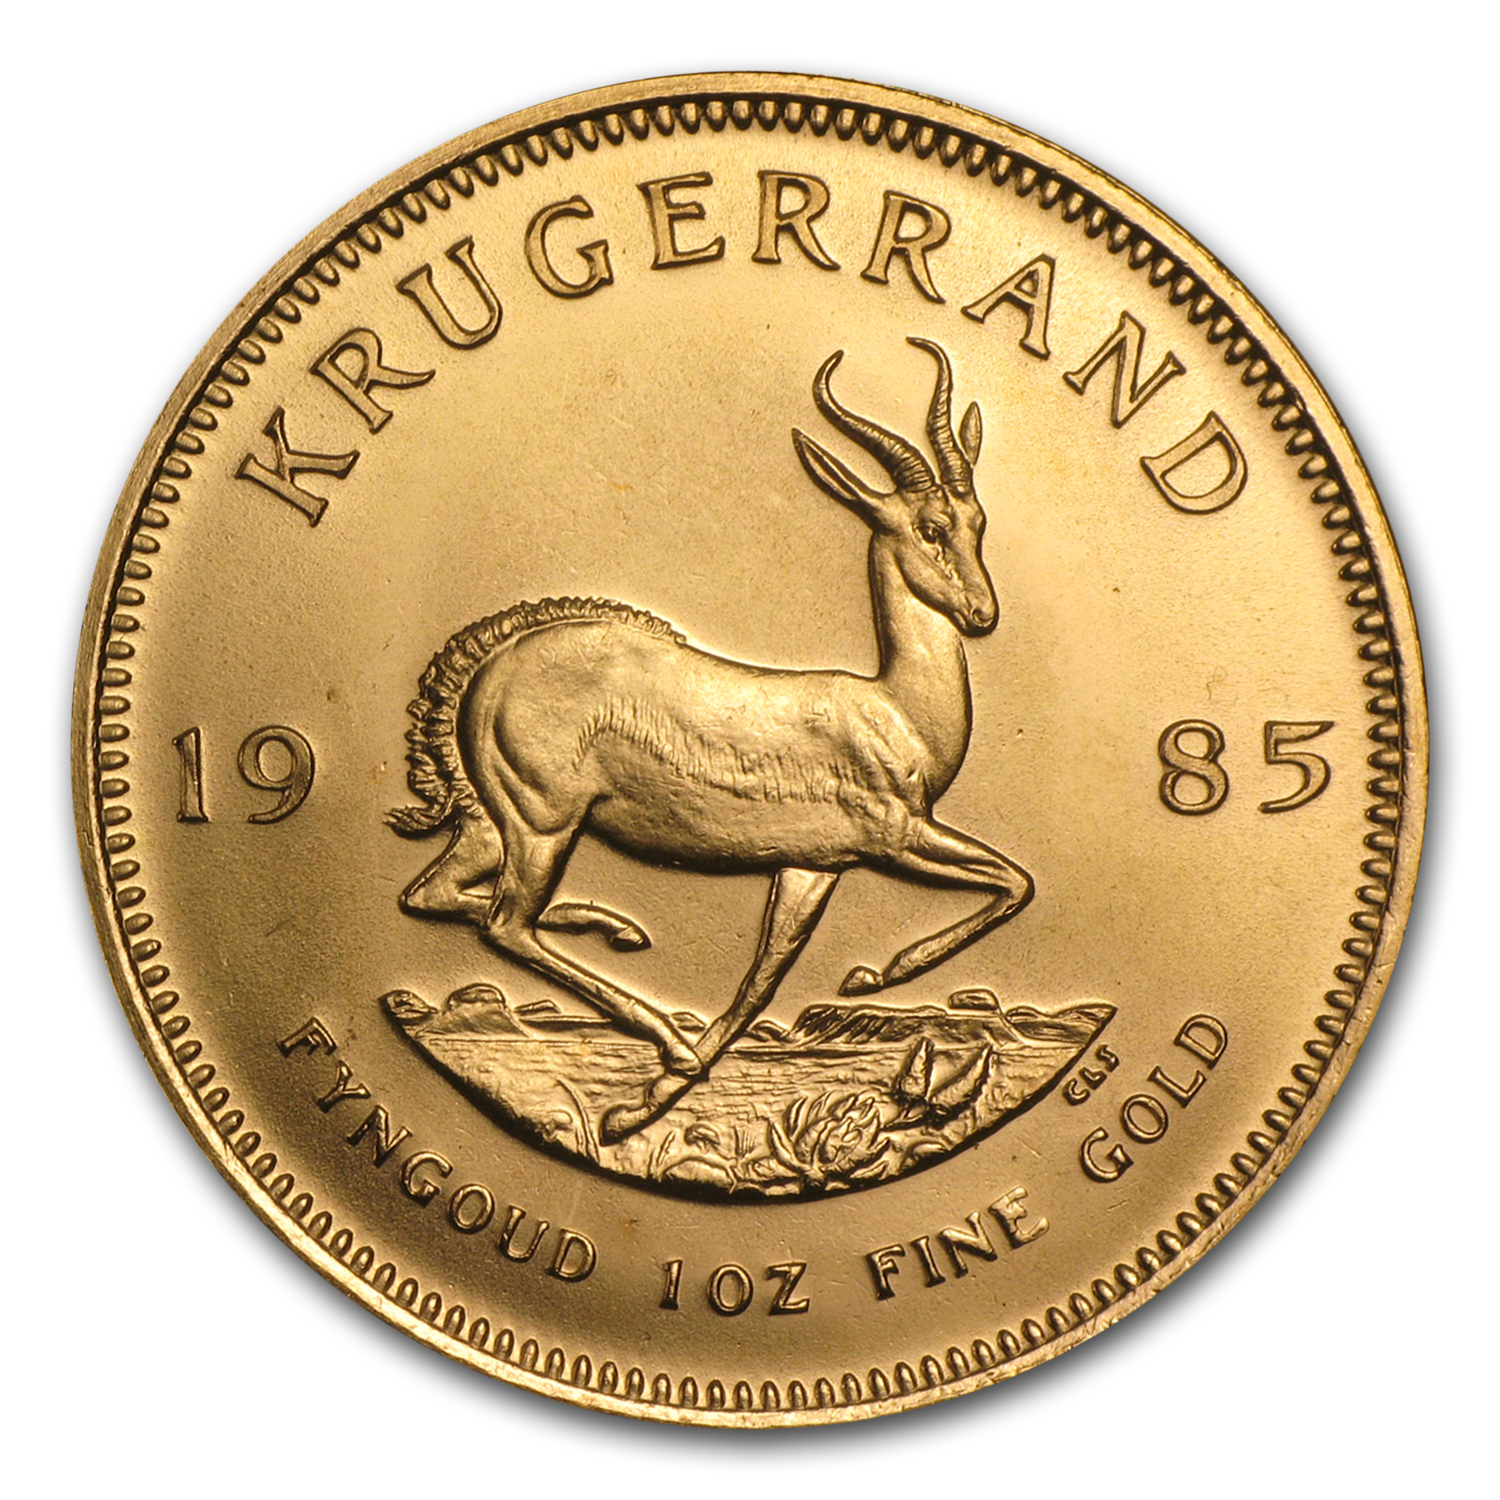 1985 South Africa 1 oz Gold Krugerrand